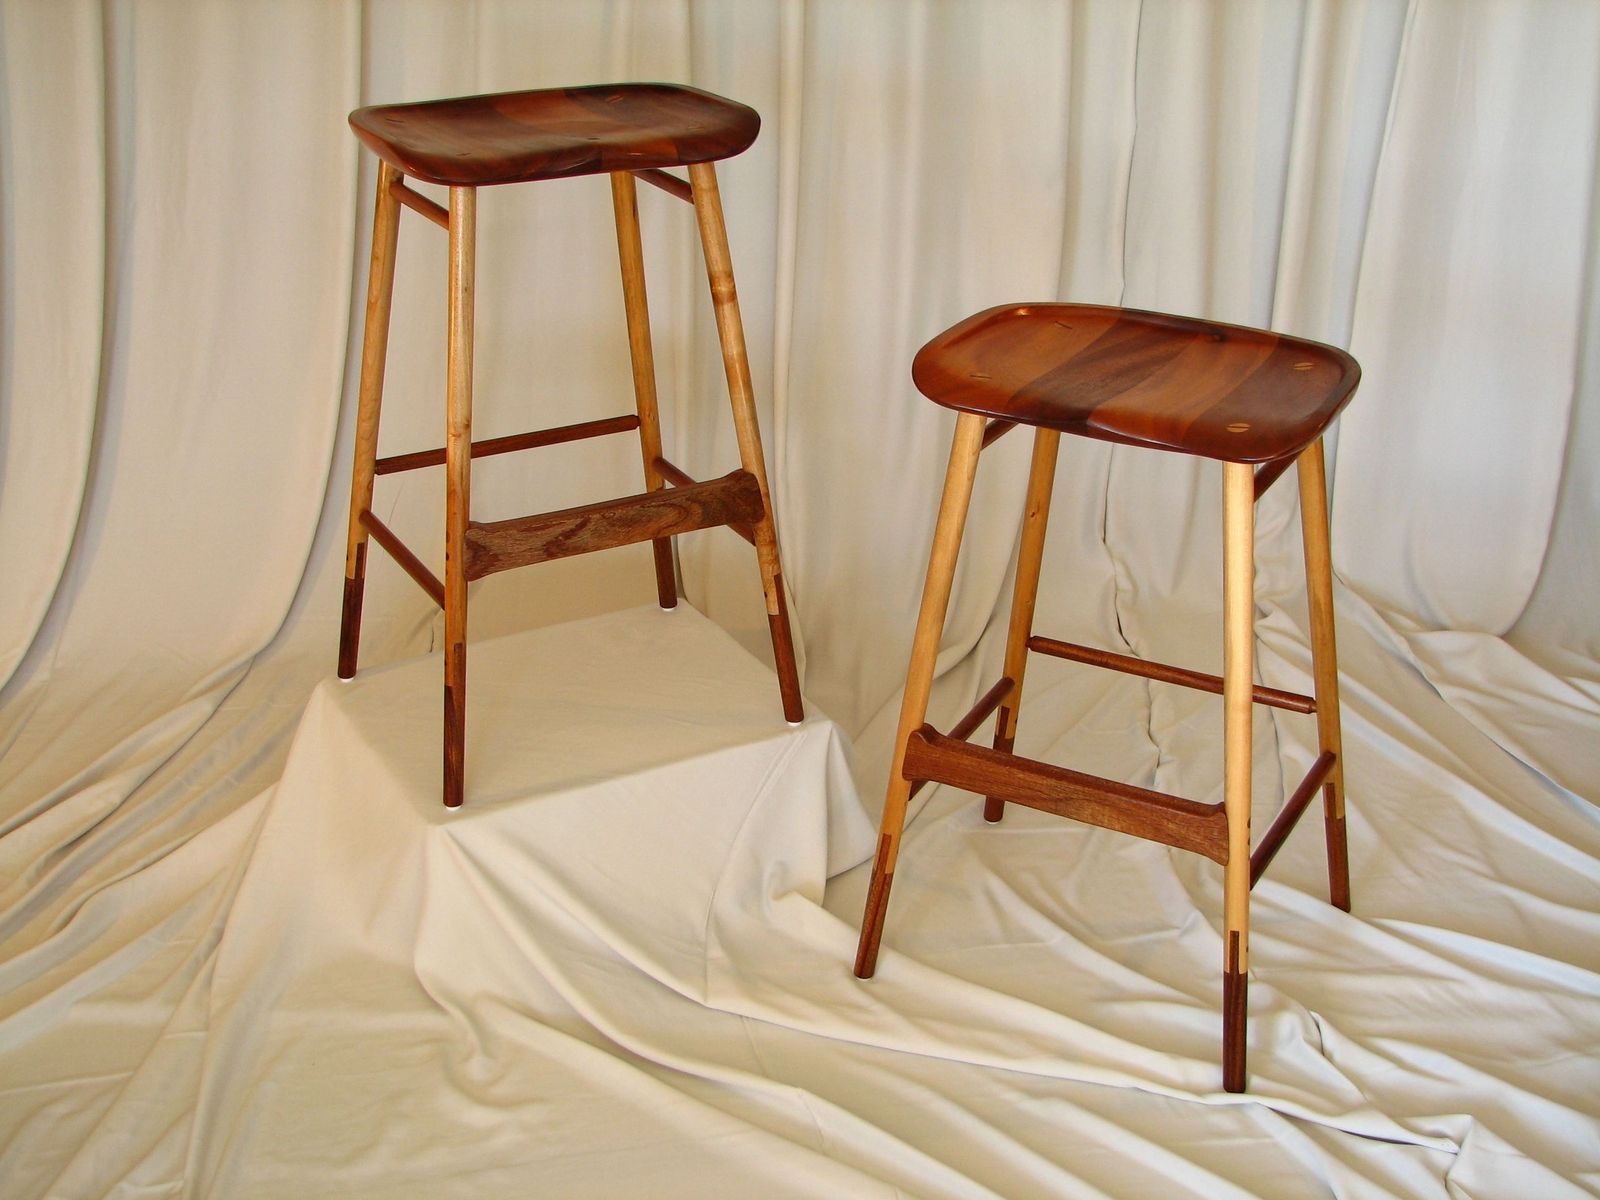 Bar Stools & Bar Stools | 2555 kitchen | Pinterest | Bar stool Stools and Bar islam-shia.org